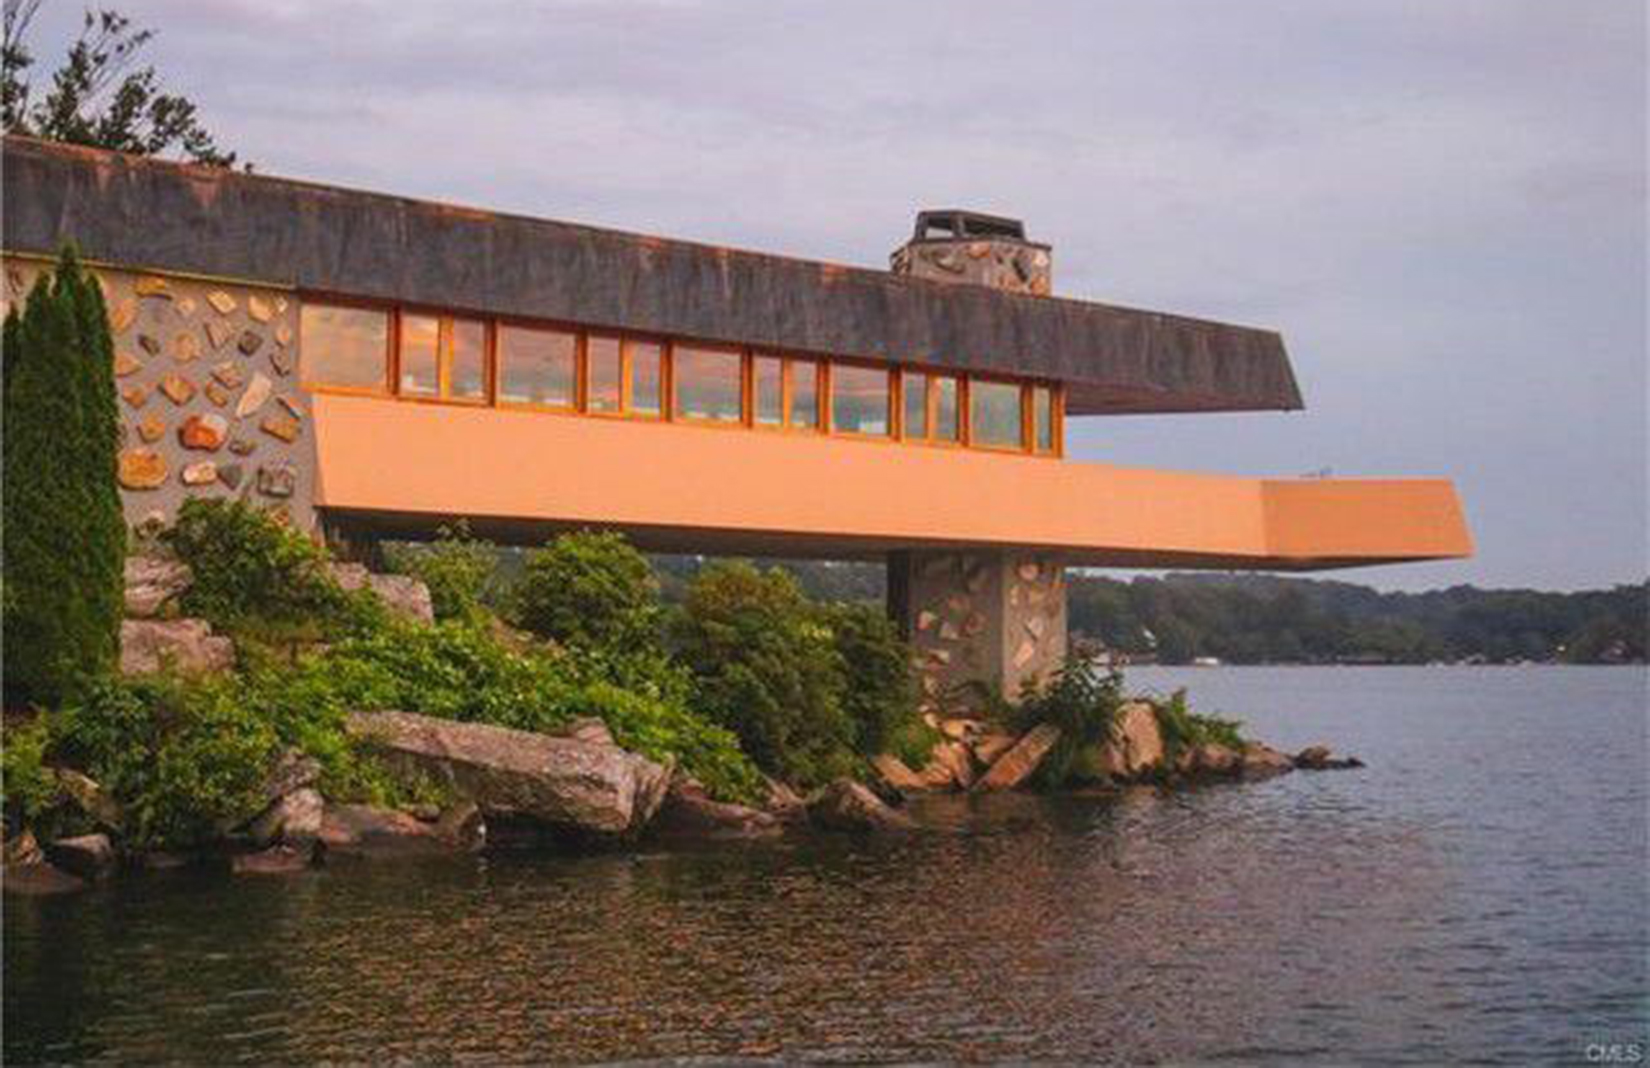 Petre Island, featuring 2 Frank Lloyd Wright homes